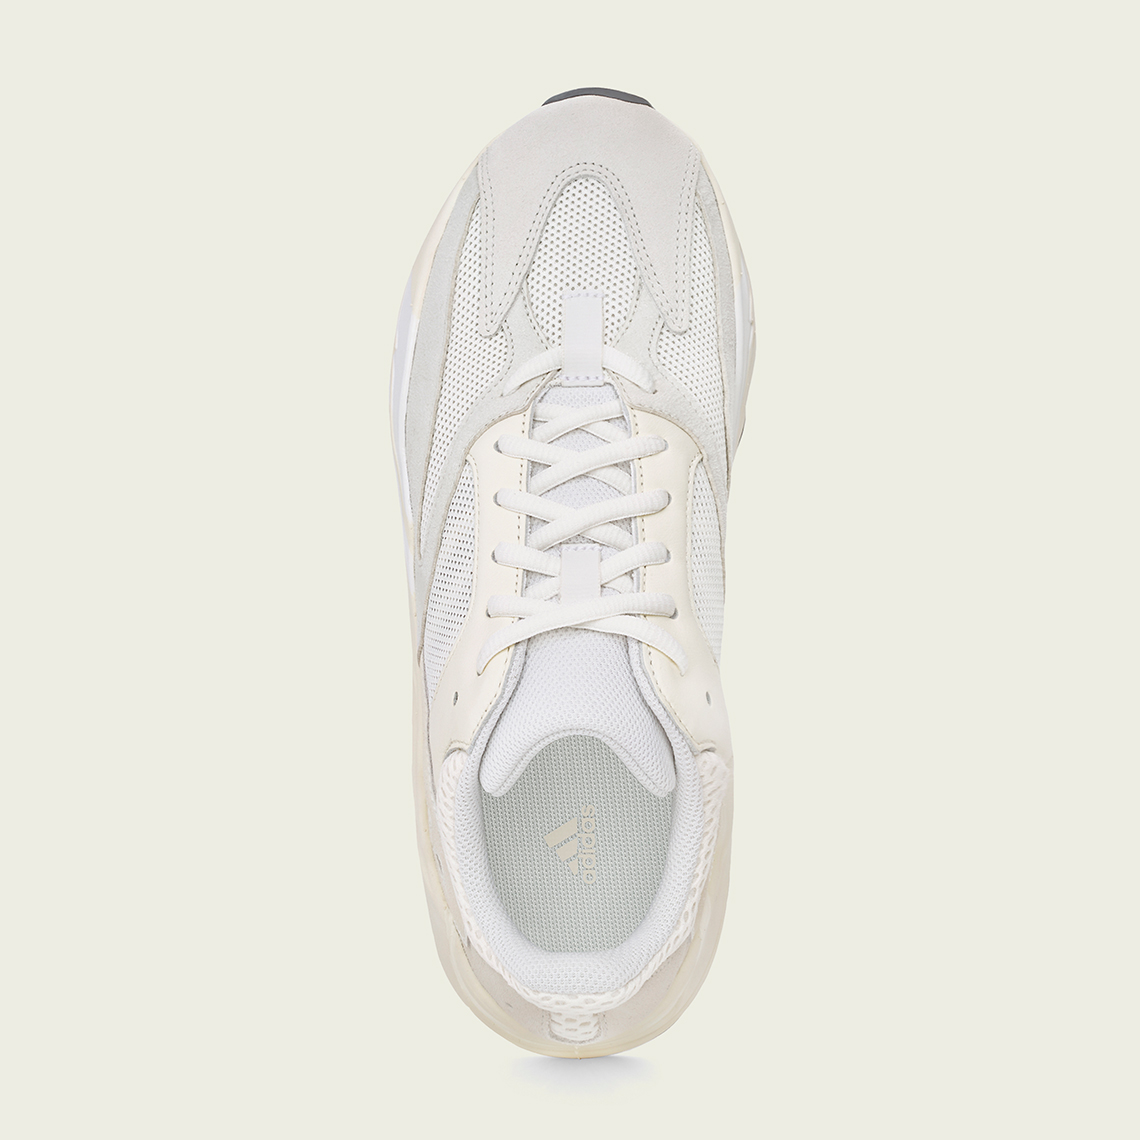 newest 07673 f0d2b adidas Yeezy 700 Analog - Where To Buy | SneakerNews.com